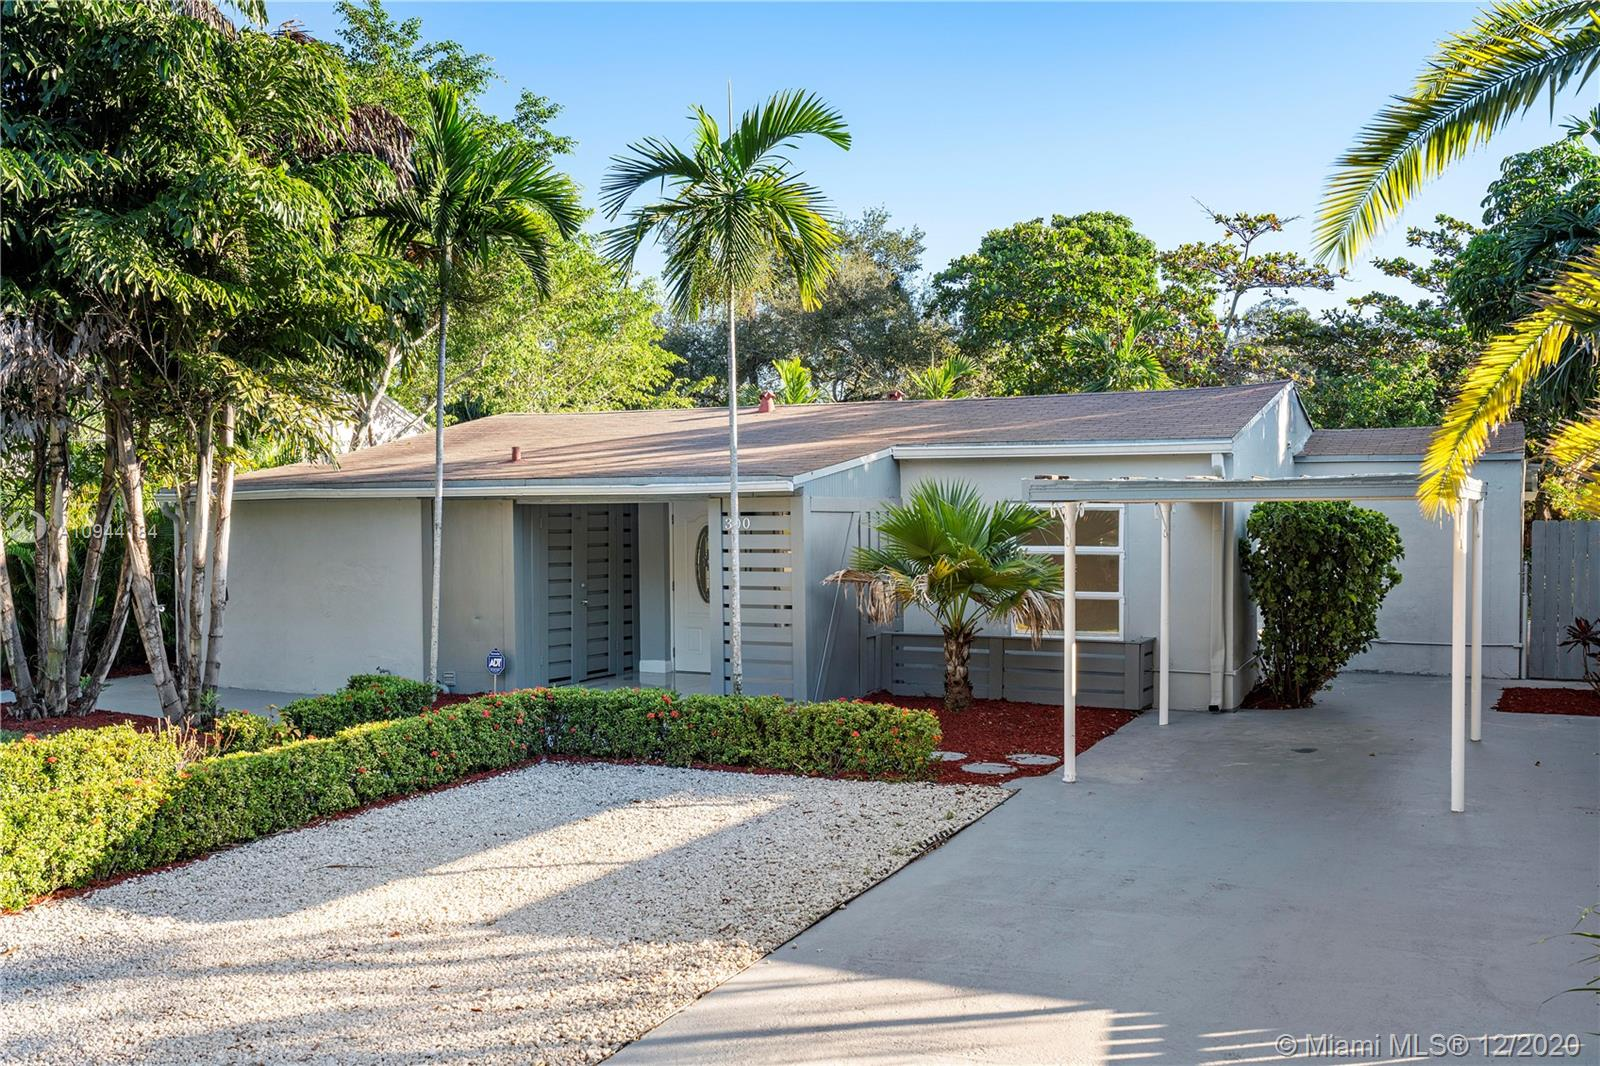 Great opportunity for an owner or investor to own this waterfront 2/2 plus den in the desirable area of Tarpon River. The property was originally a 3/2, but 2 rooms were combine to create a master suite. The owner will allow some credits to update the roof and windows. The property is within close proximity to everything, convenient to major highways and short walking distance to Riverfront and 5-10 minute car ride to the beach.